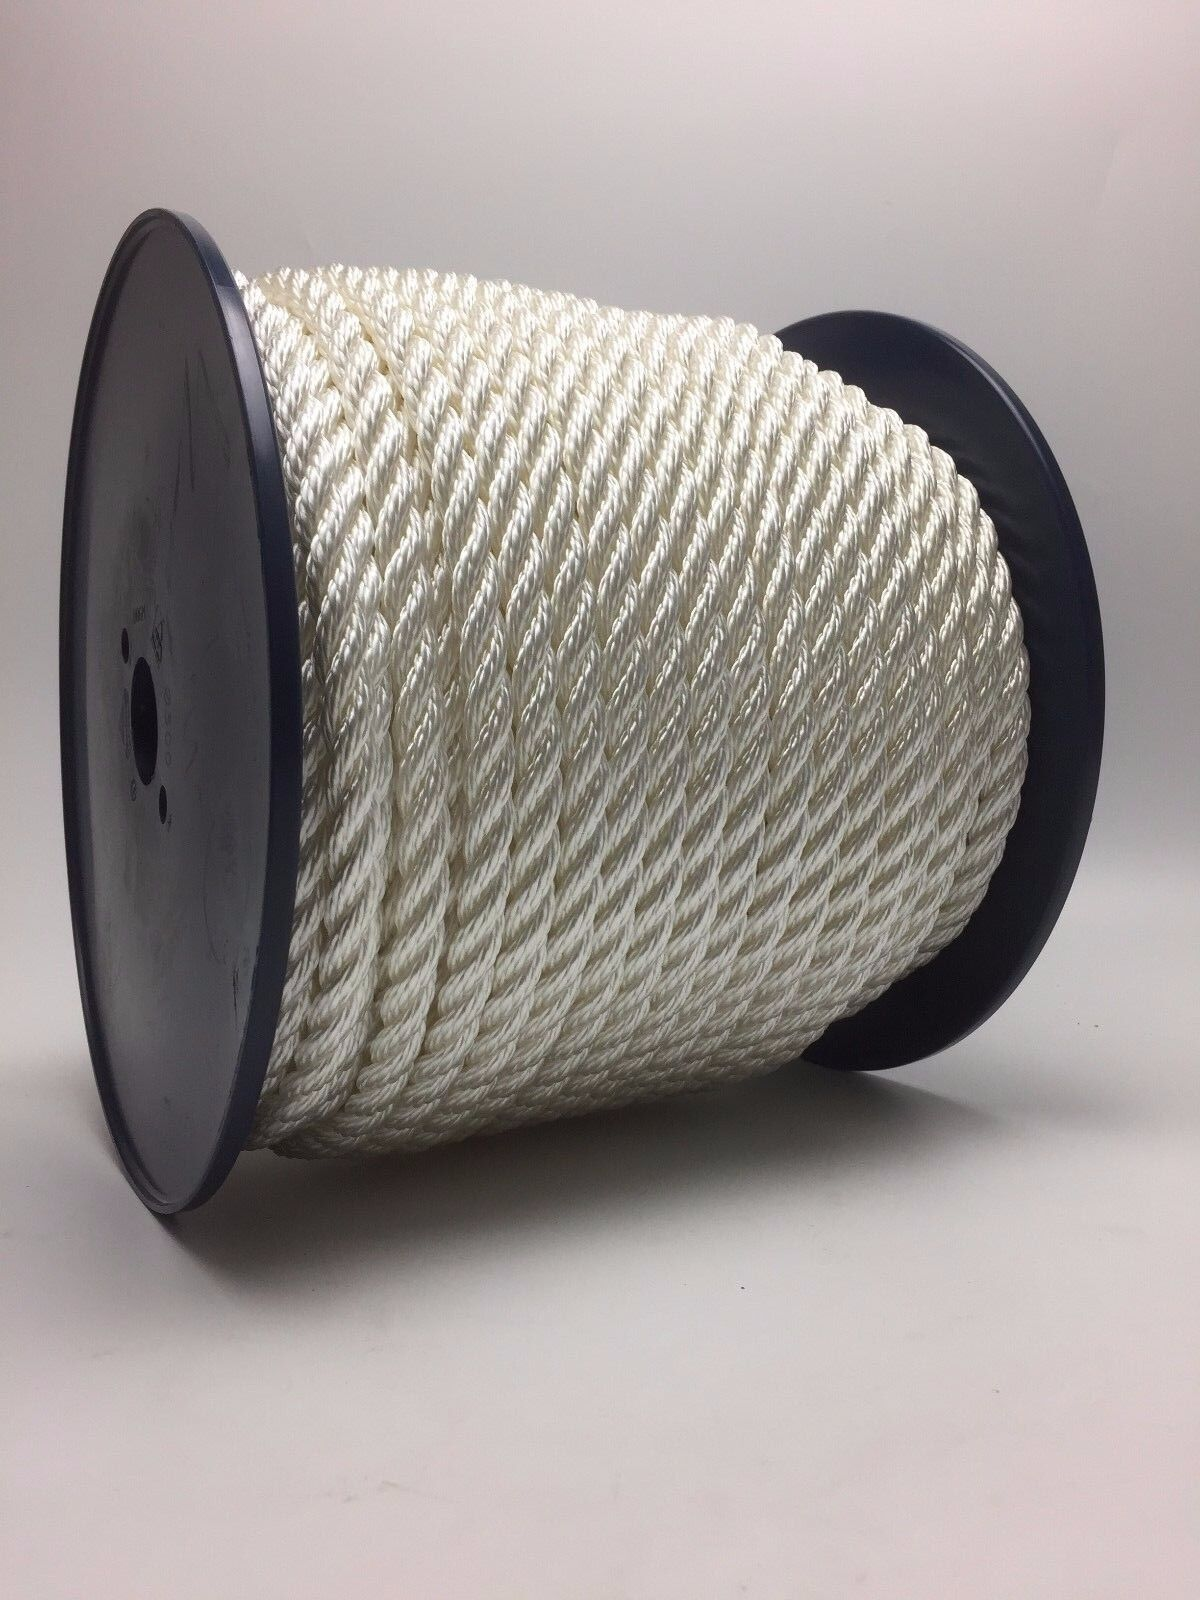 Nylon Rope 22mm x 100 Metre Reel White 3 Strand Boat Marine Yacht Anchor Coil